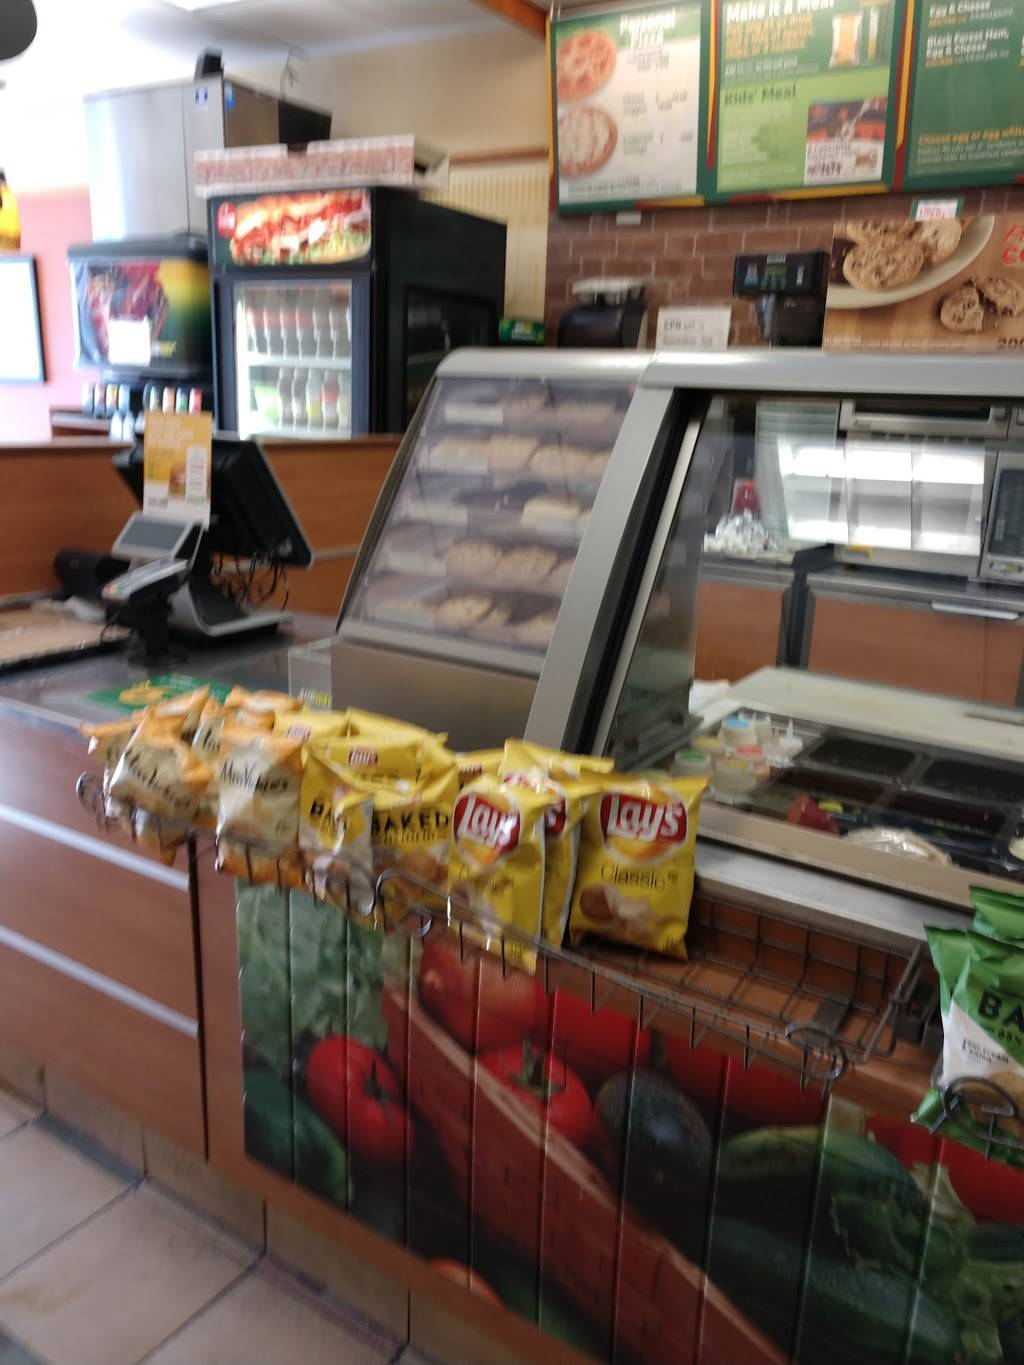 Subway Restaurants | restaurant | 597 E Tremont Ave, Bronx, NY 10457, USA | 3472714950 OR +1 347-271-4950